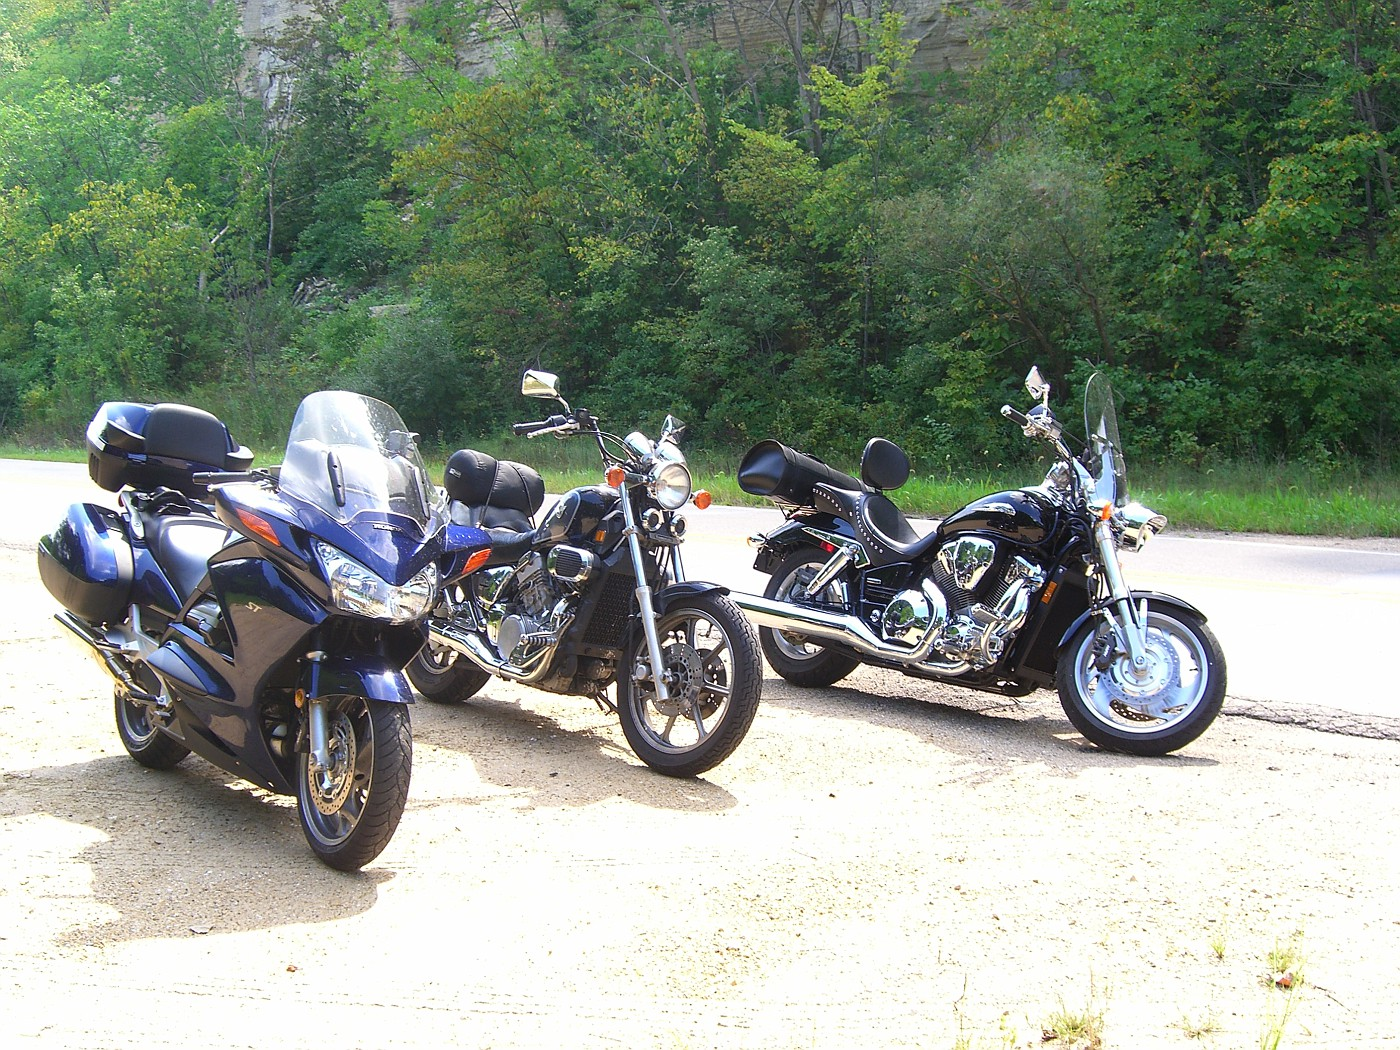 engine stalled in the middel of the ride, again! - Kawasaki Vulcan